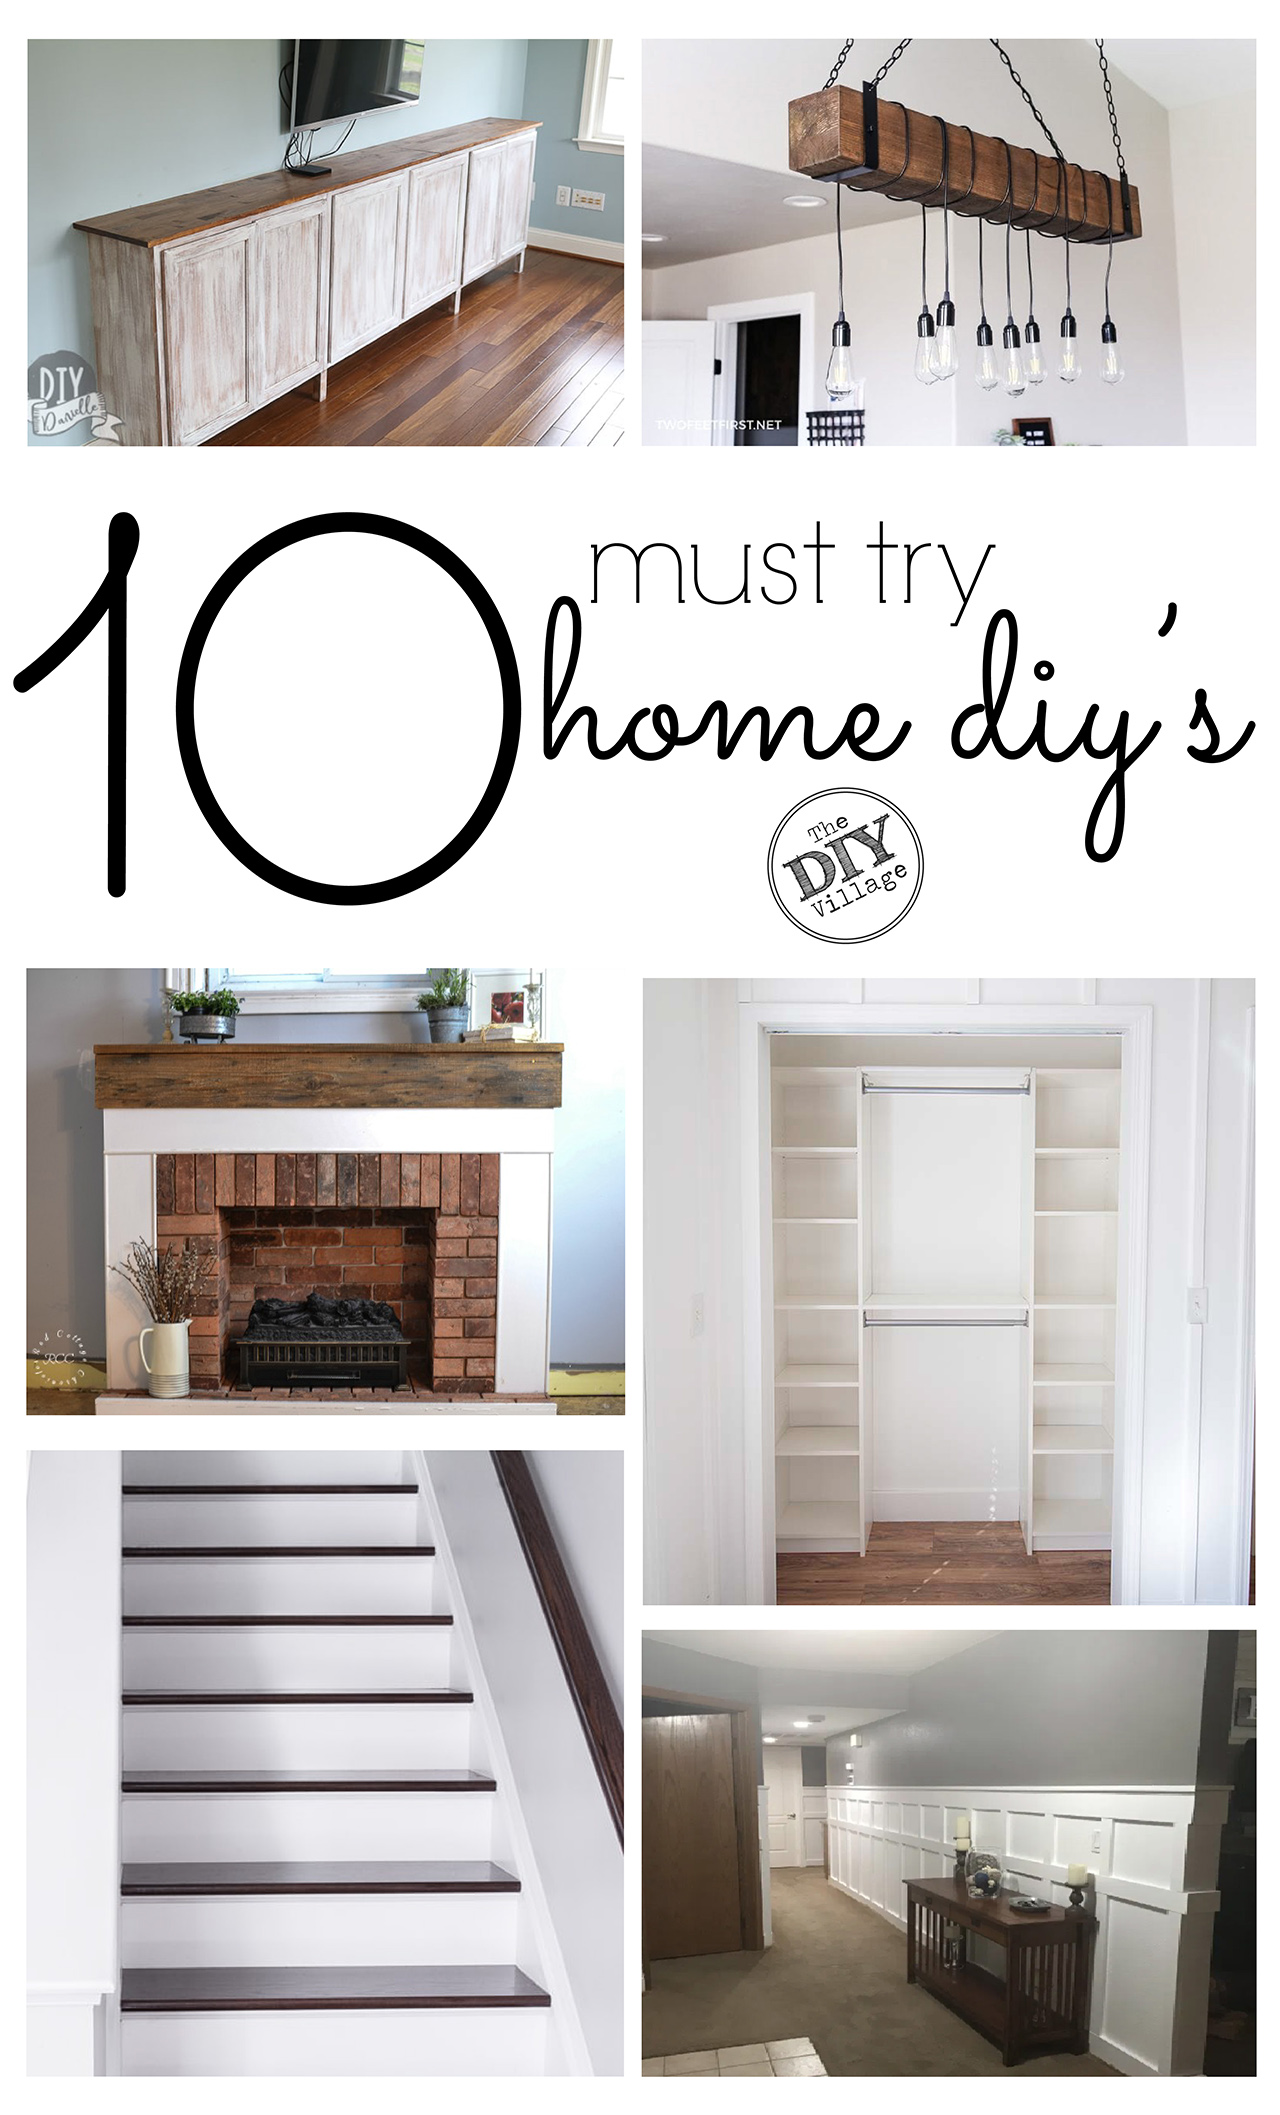 Improve your home with 10 must try DIY's